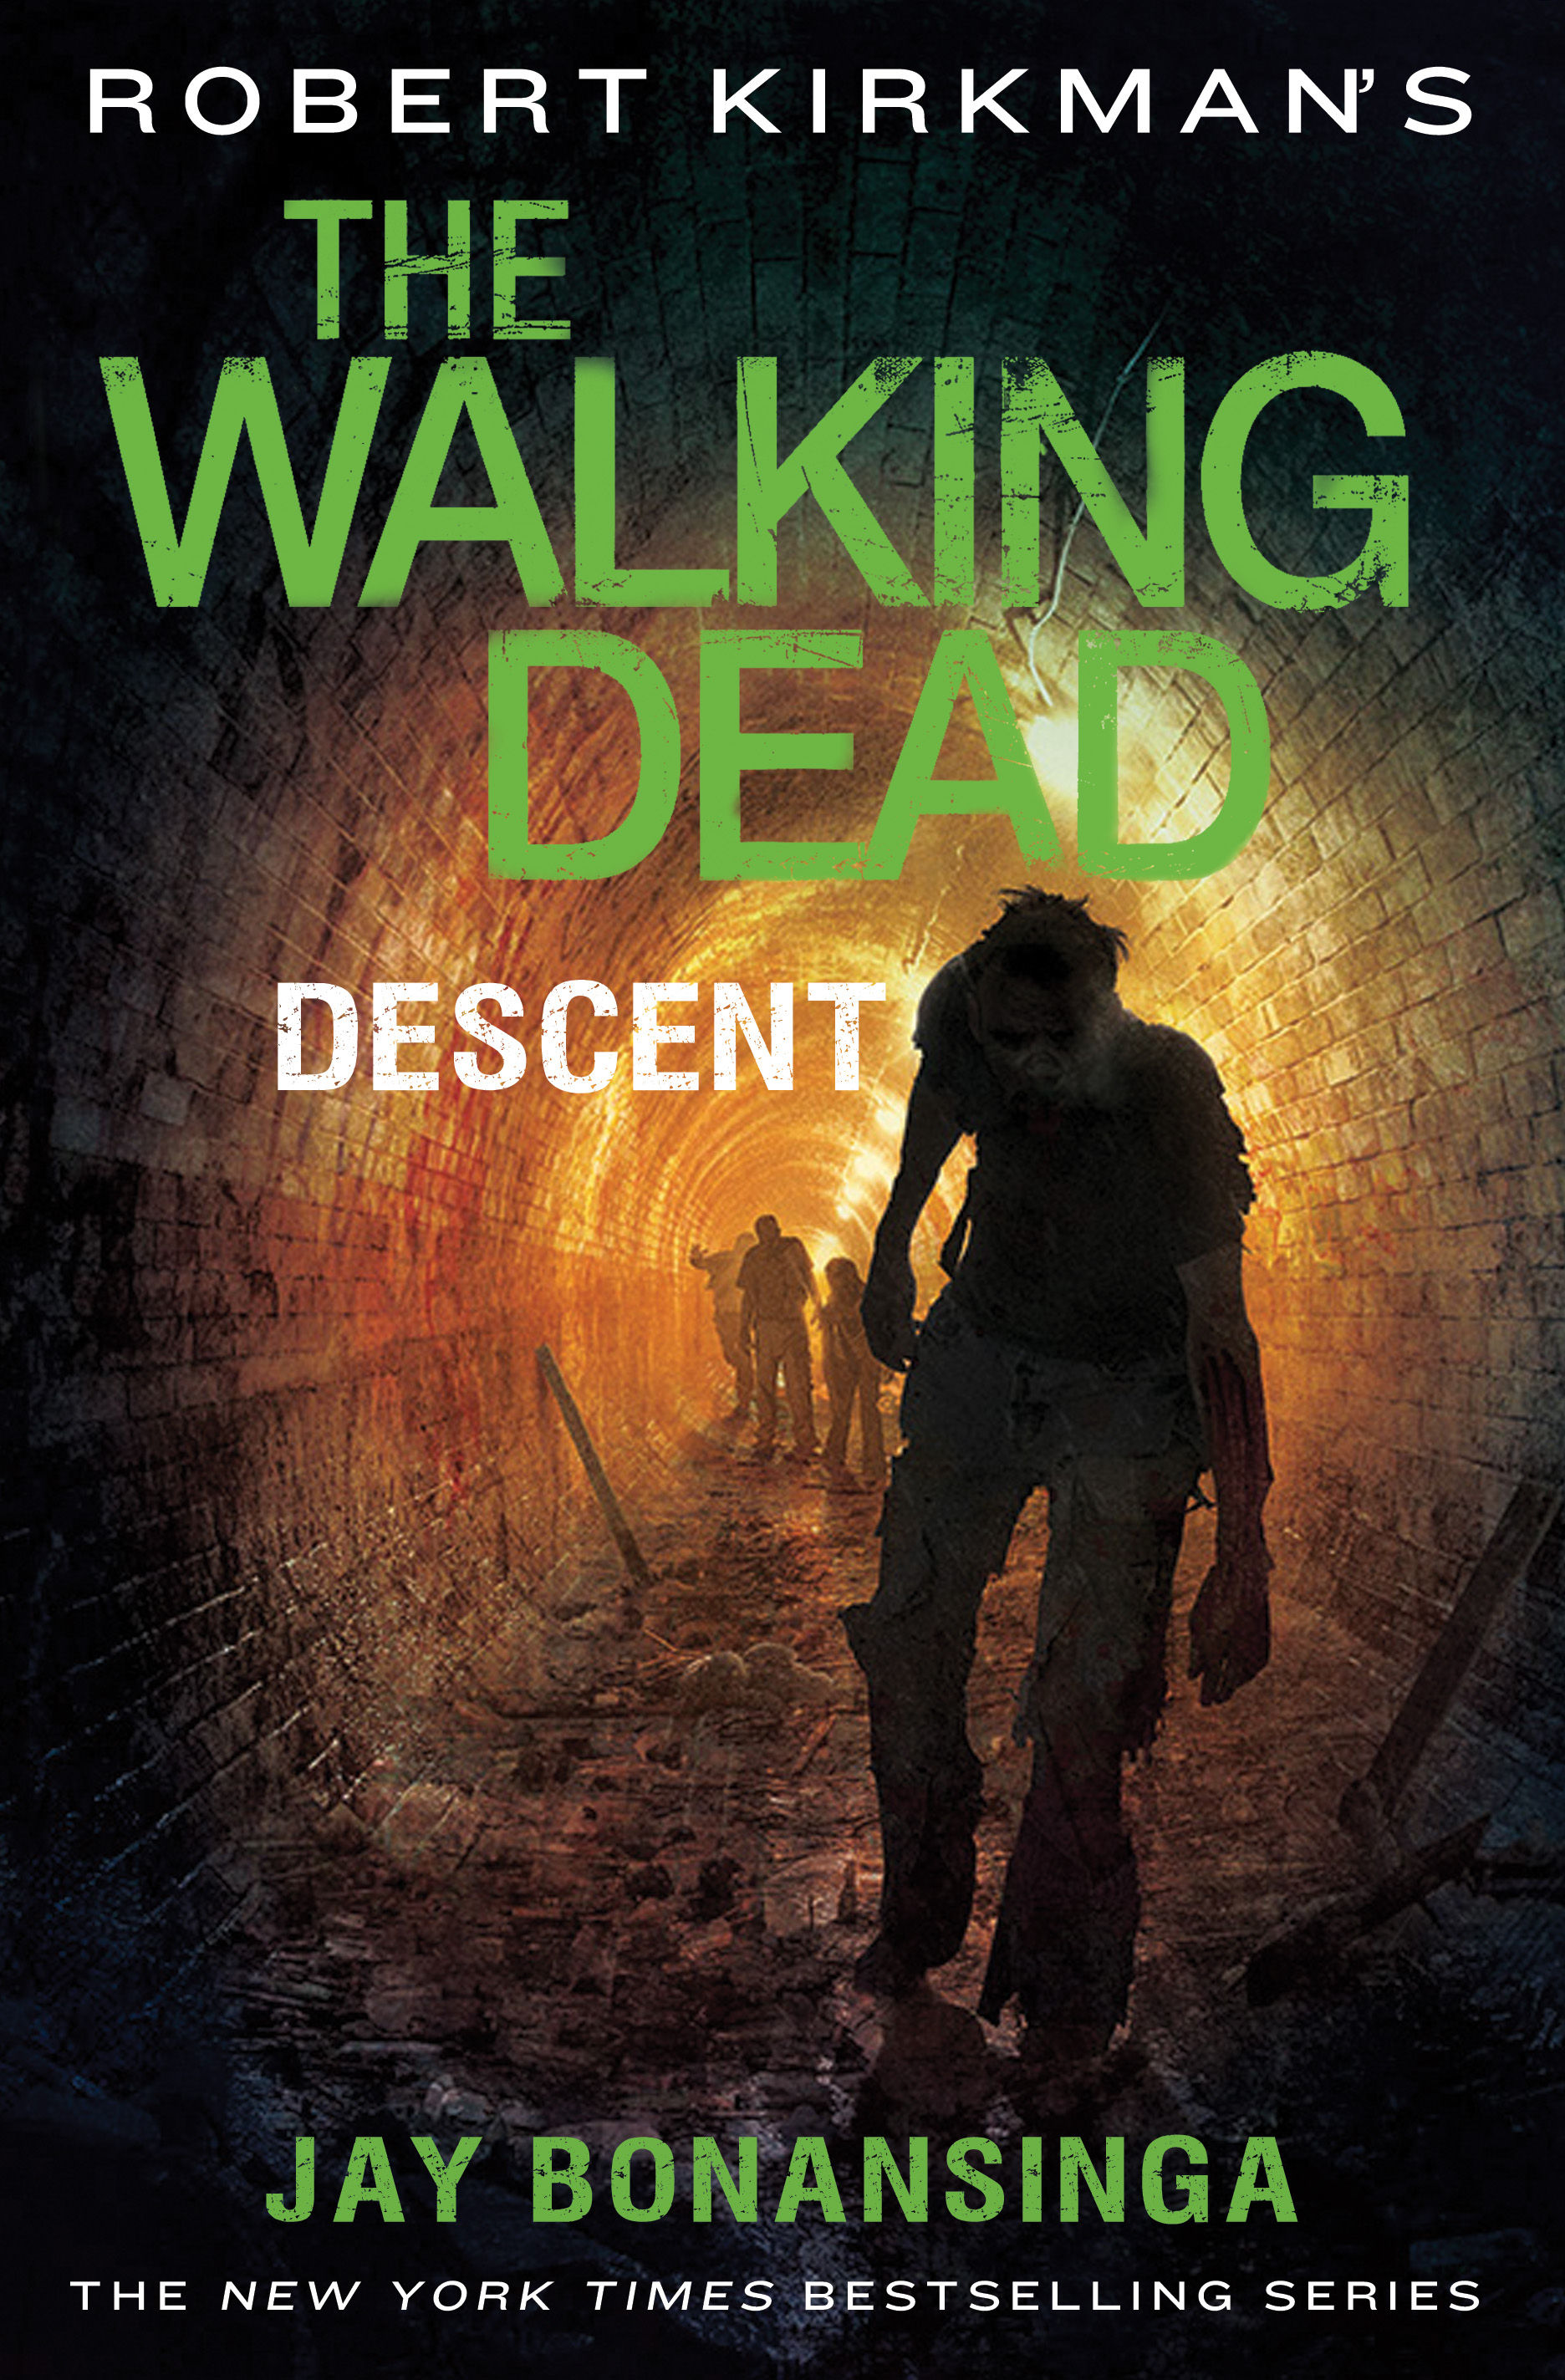 Friday Reads: The Walking Dead: Descent